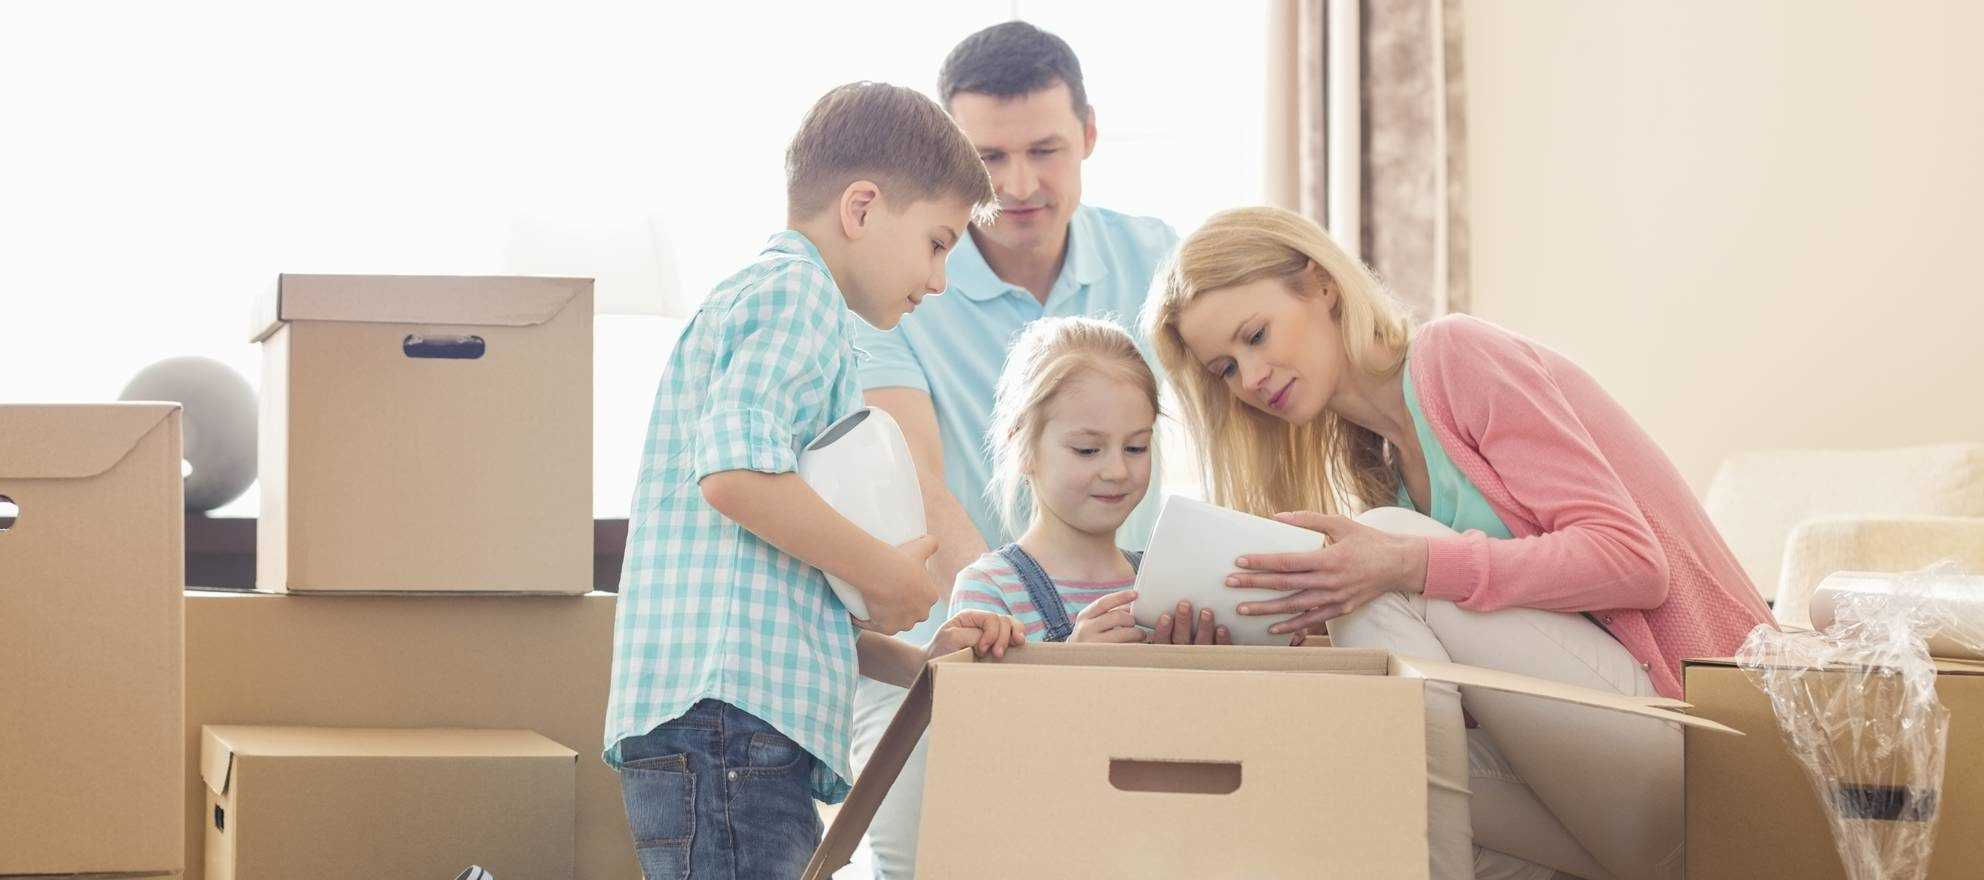 Some Vital Mistakes You Must Avoid While Moving With Kids